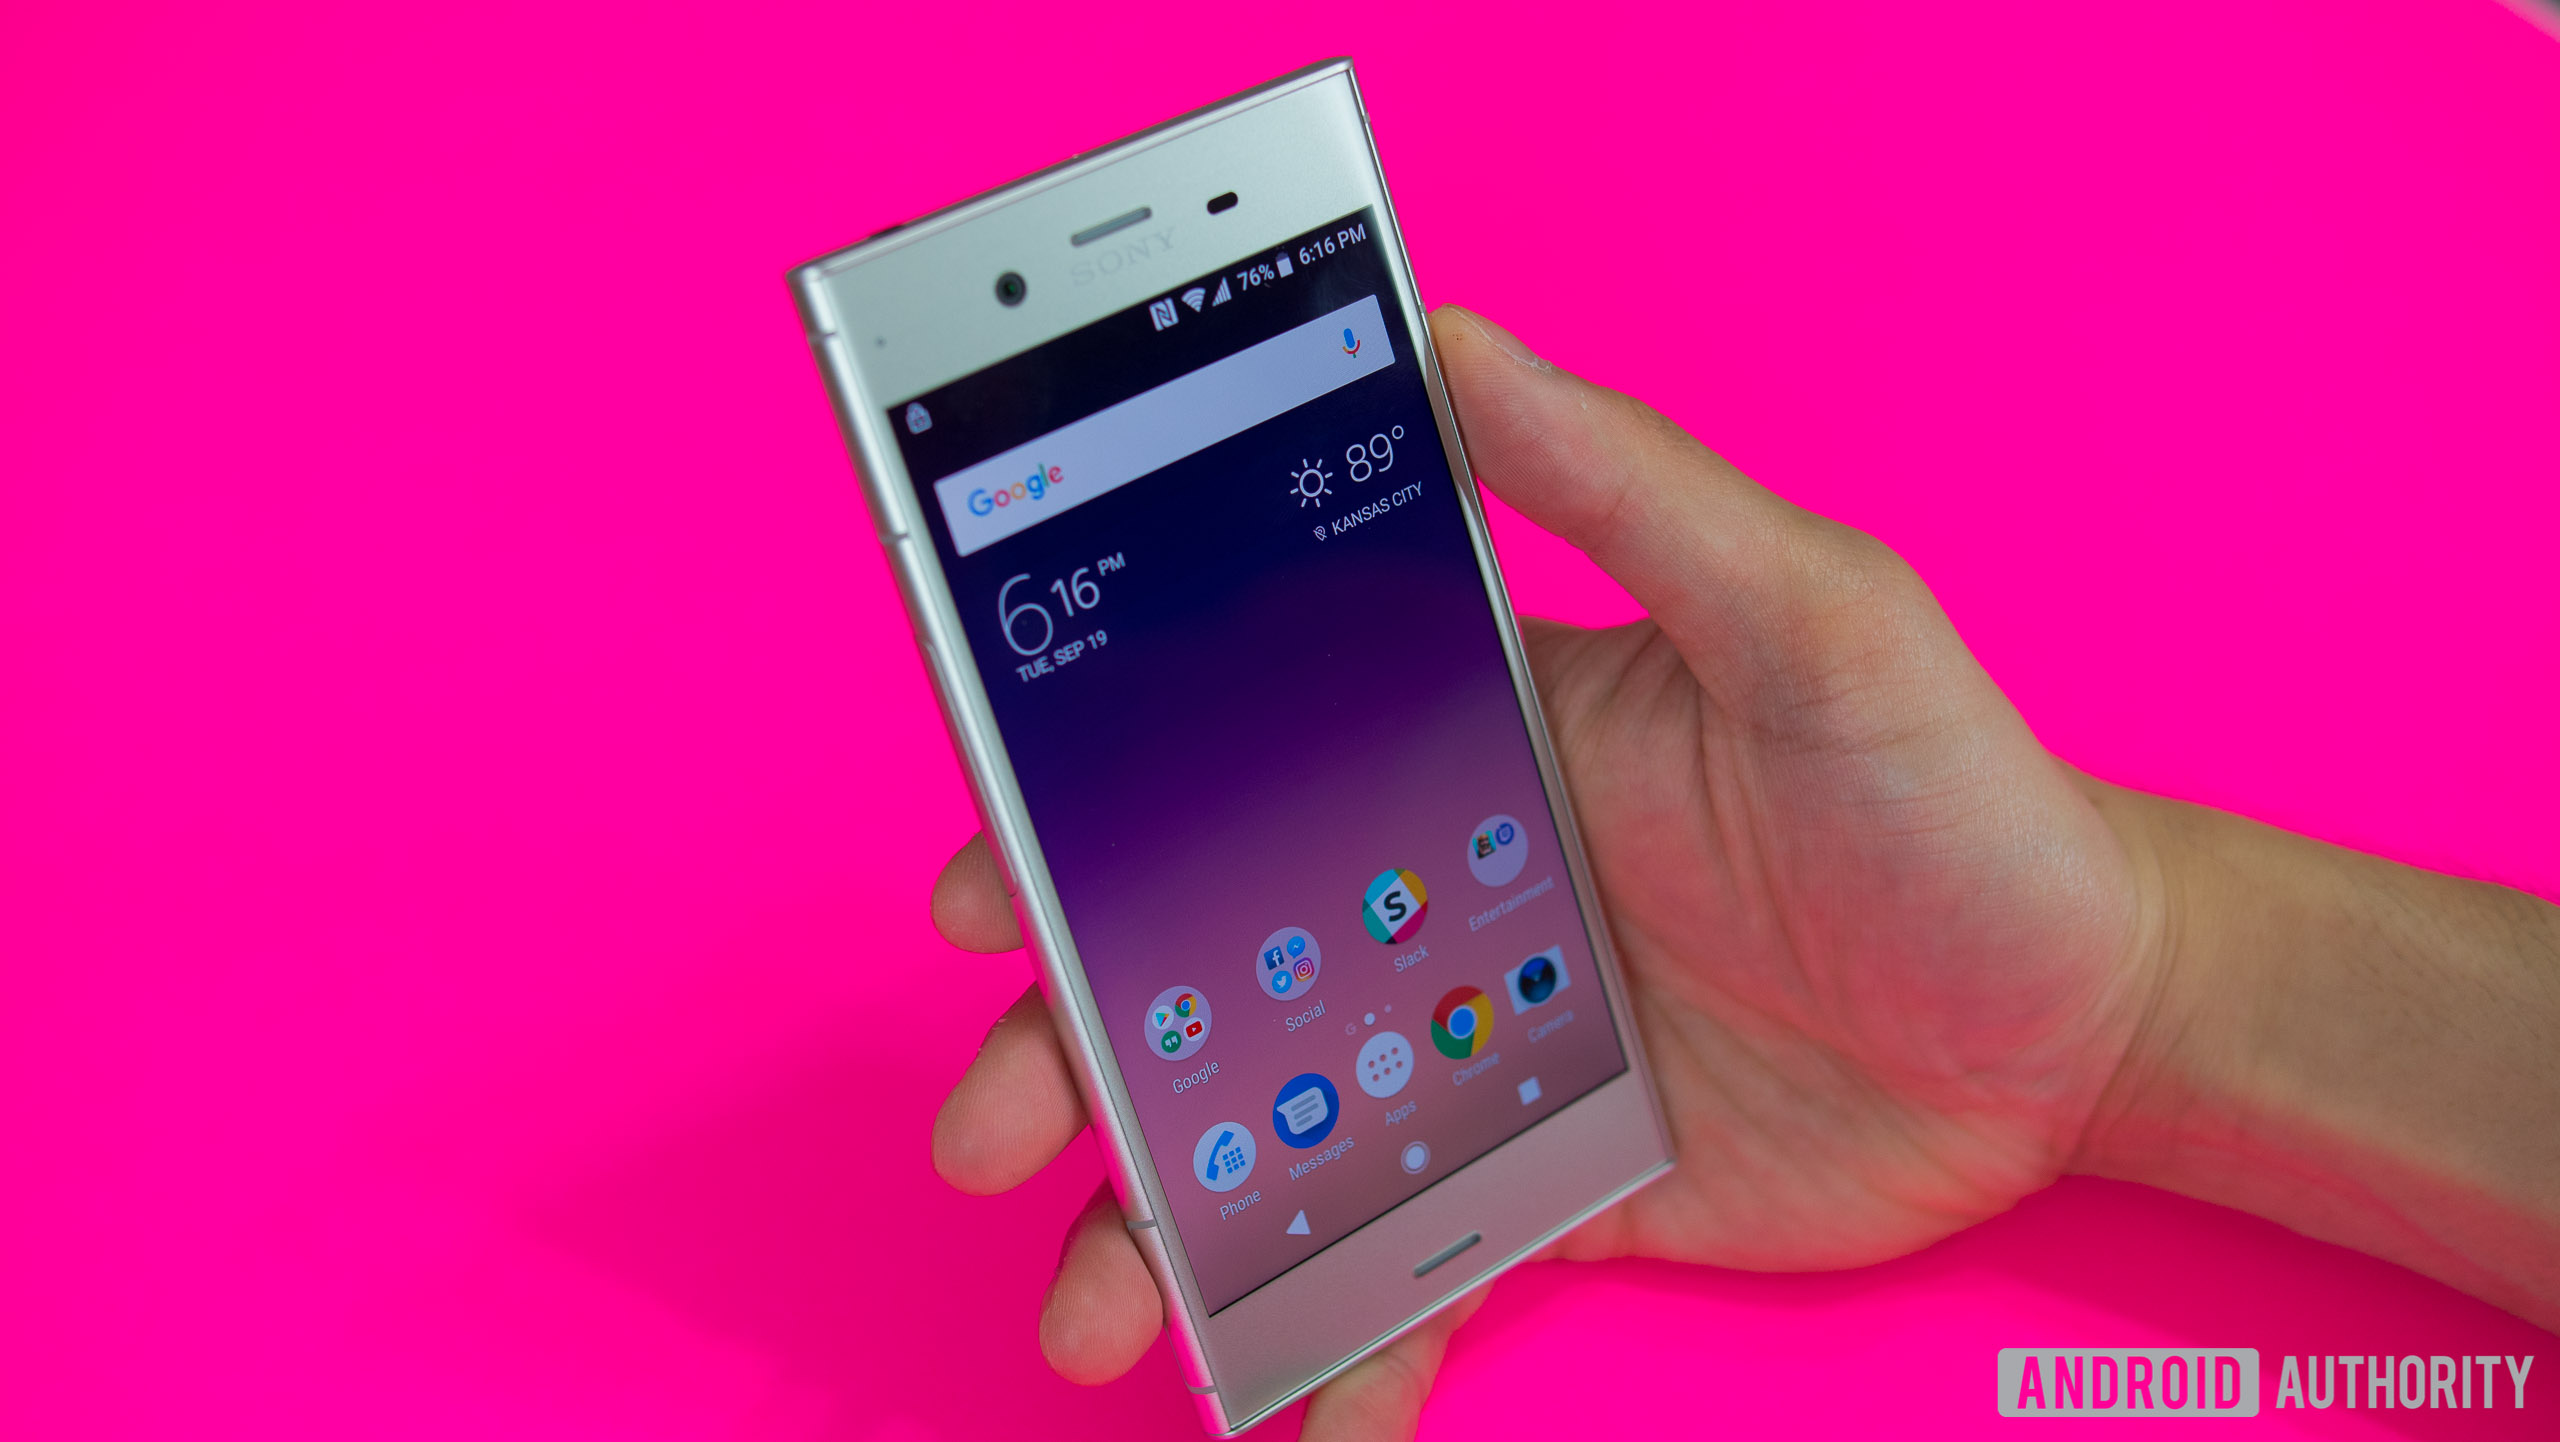 Sony Xz1 Compact System Update Sony S High End Xperia Phones Will Get Software Upgrades Two